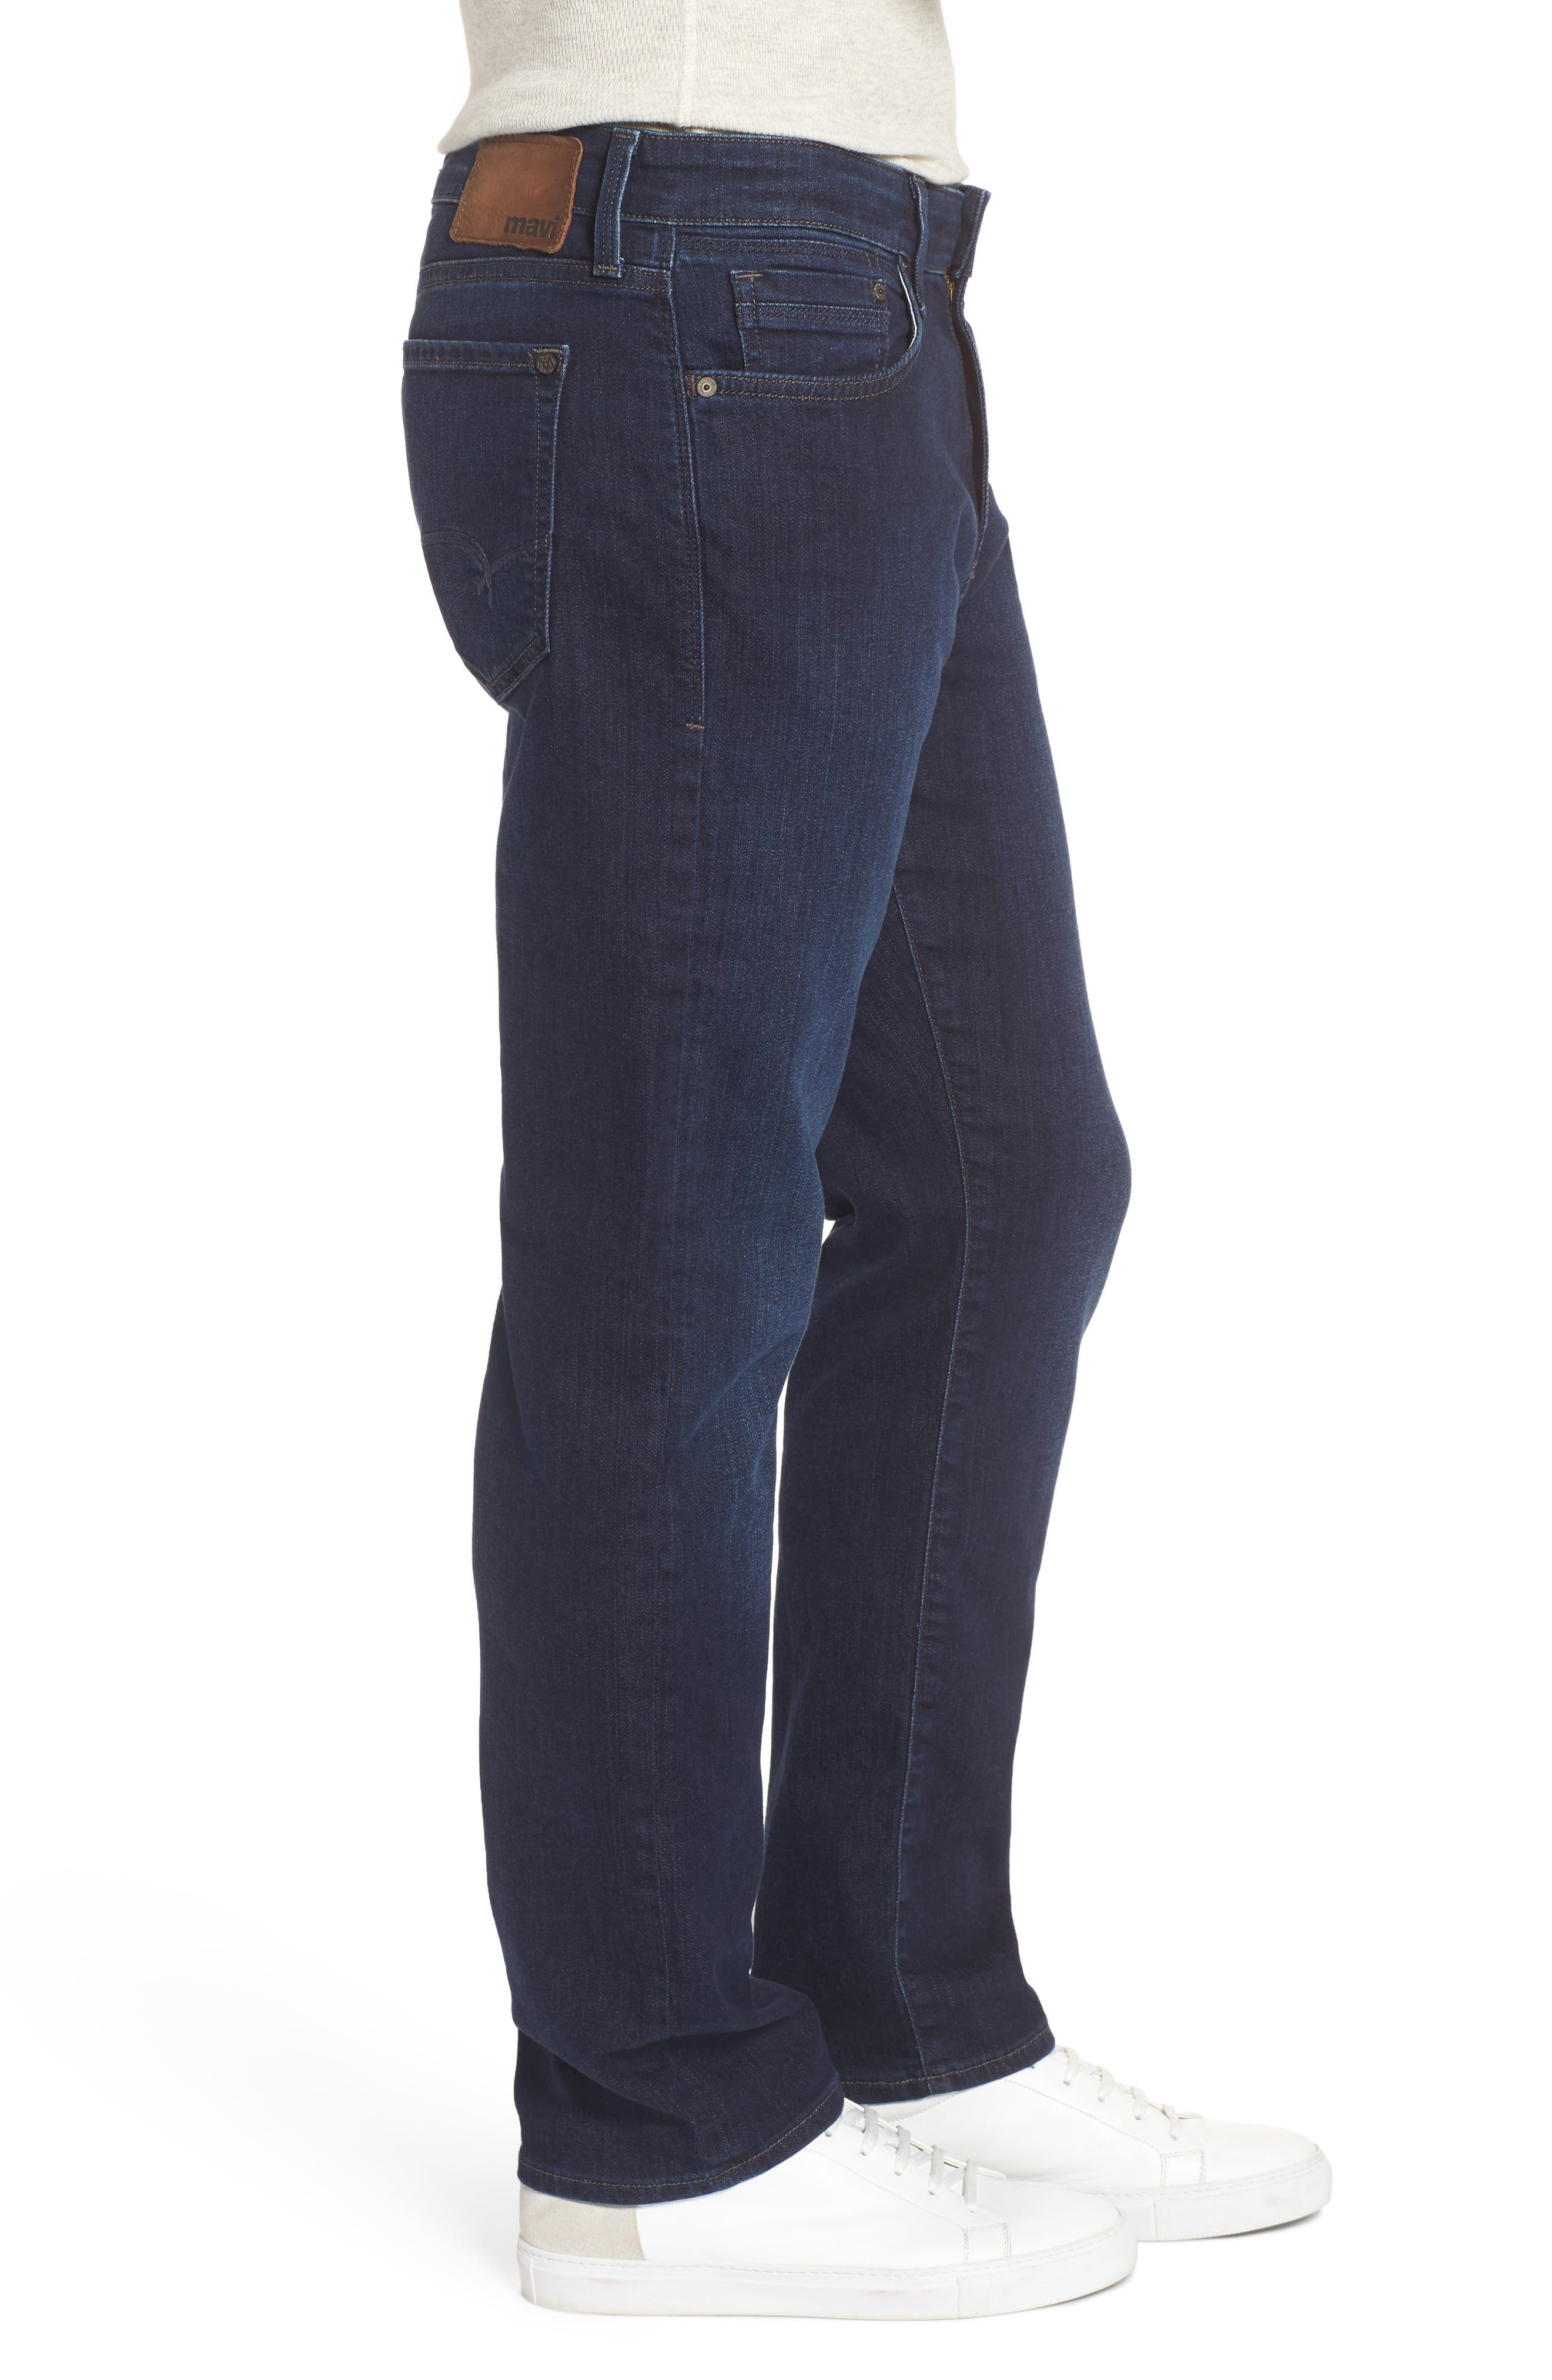 Myles Straight Fit Jeans,                             Alternate thumbnail 3, color,                             Deep Clean Comfort